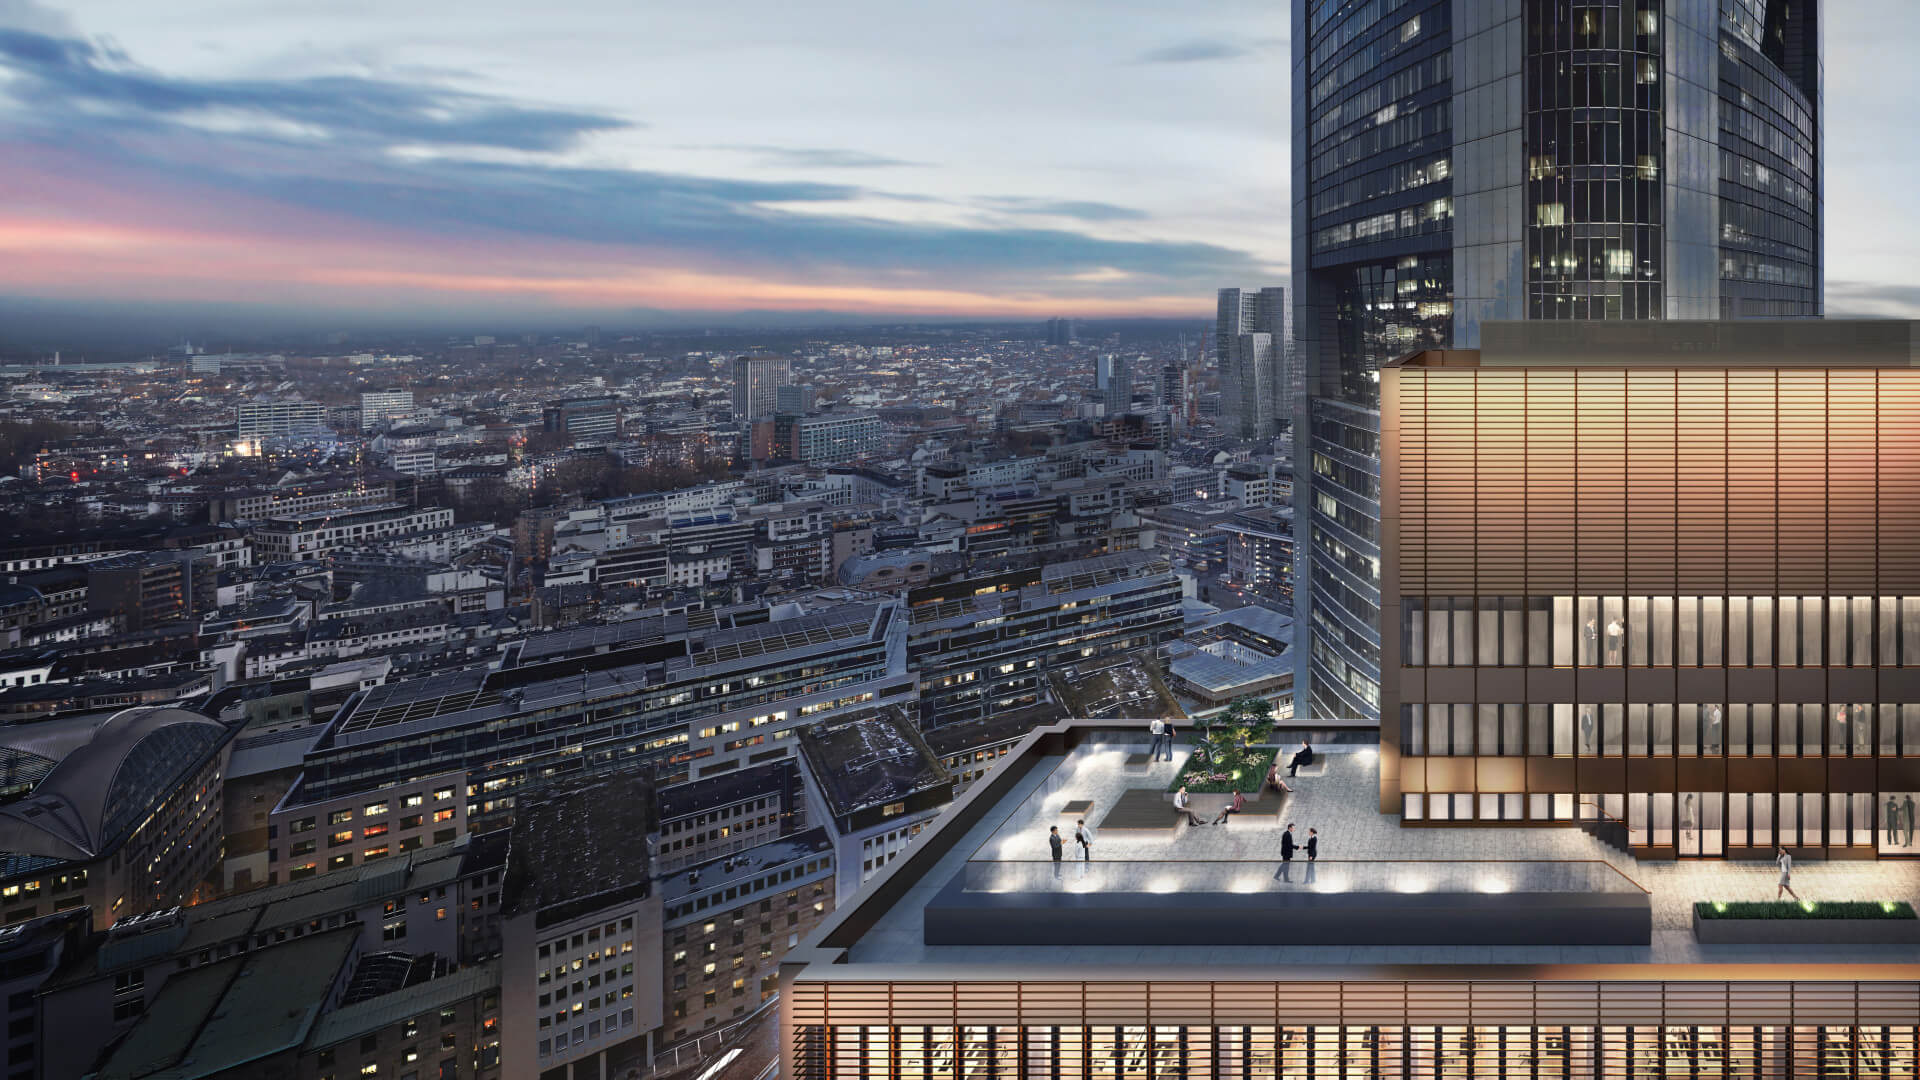 Construction to Begin Later this Year on New San Francisco Civic Center Tower